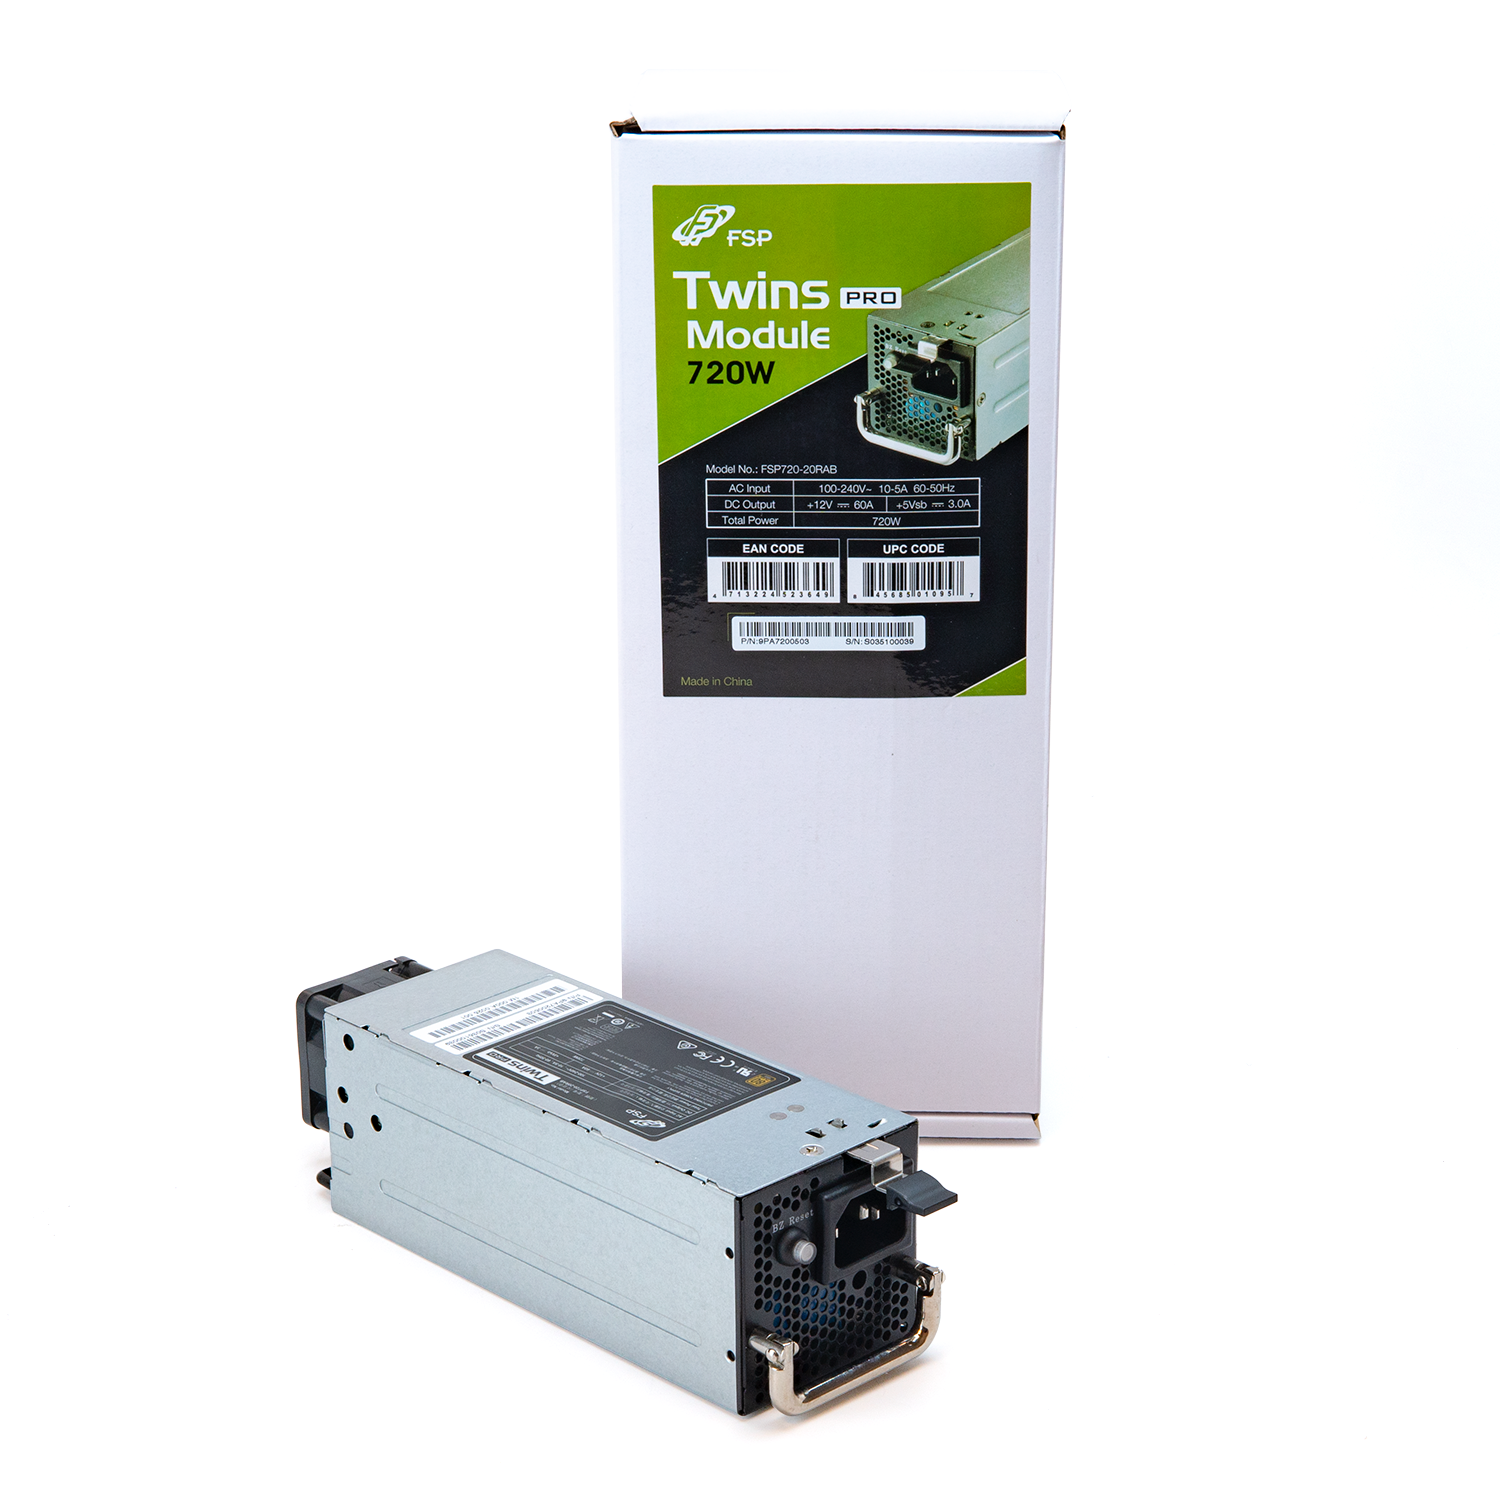 Twins Pro 720W Replacement Module for Twins Pro 700W PSU (FSP720-20RAB)